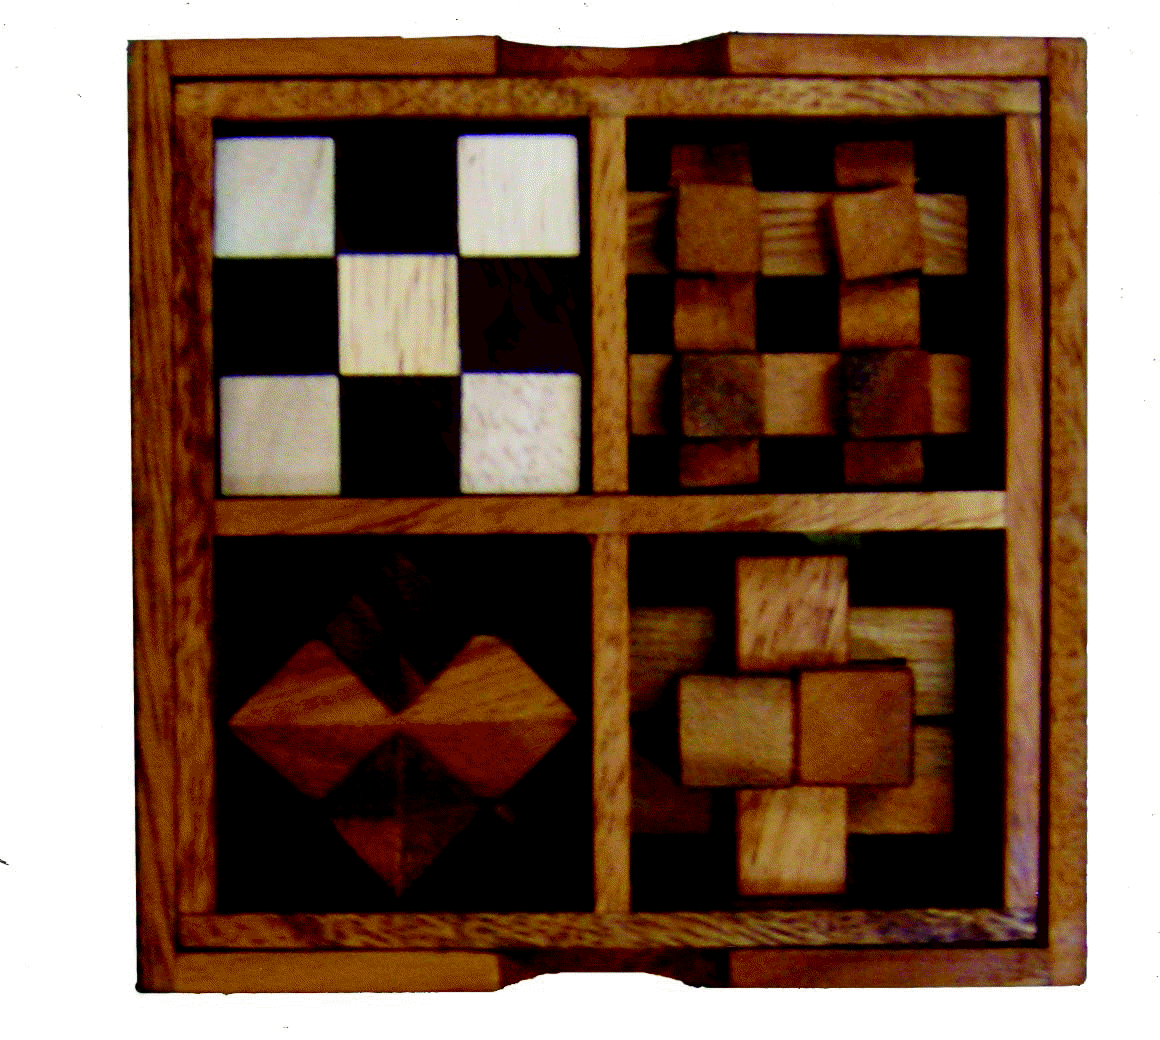 4 in 1 Wooden Puzzles Timber Box